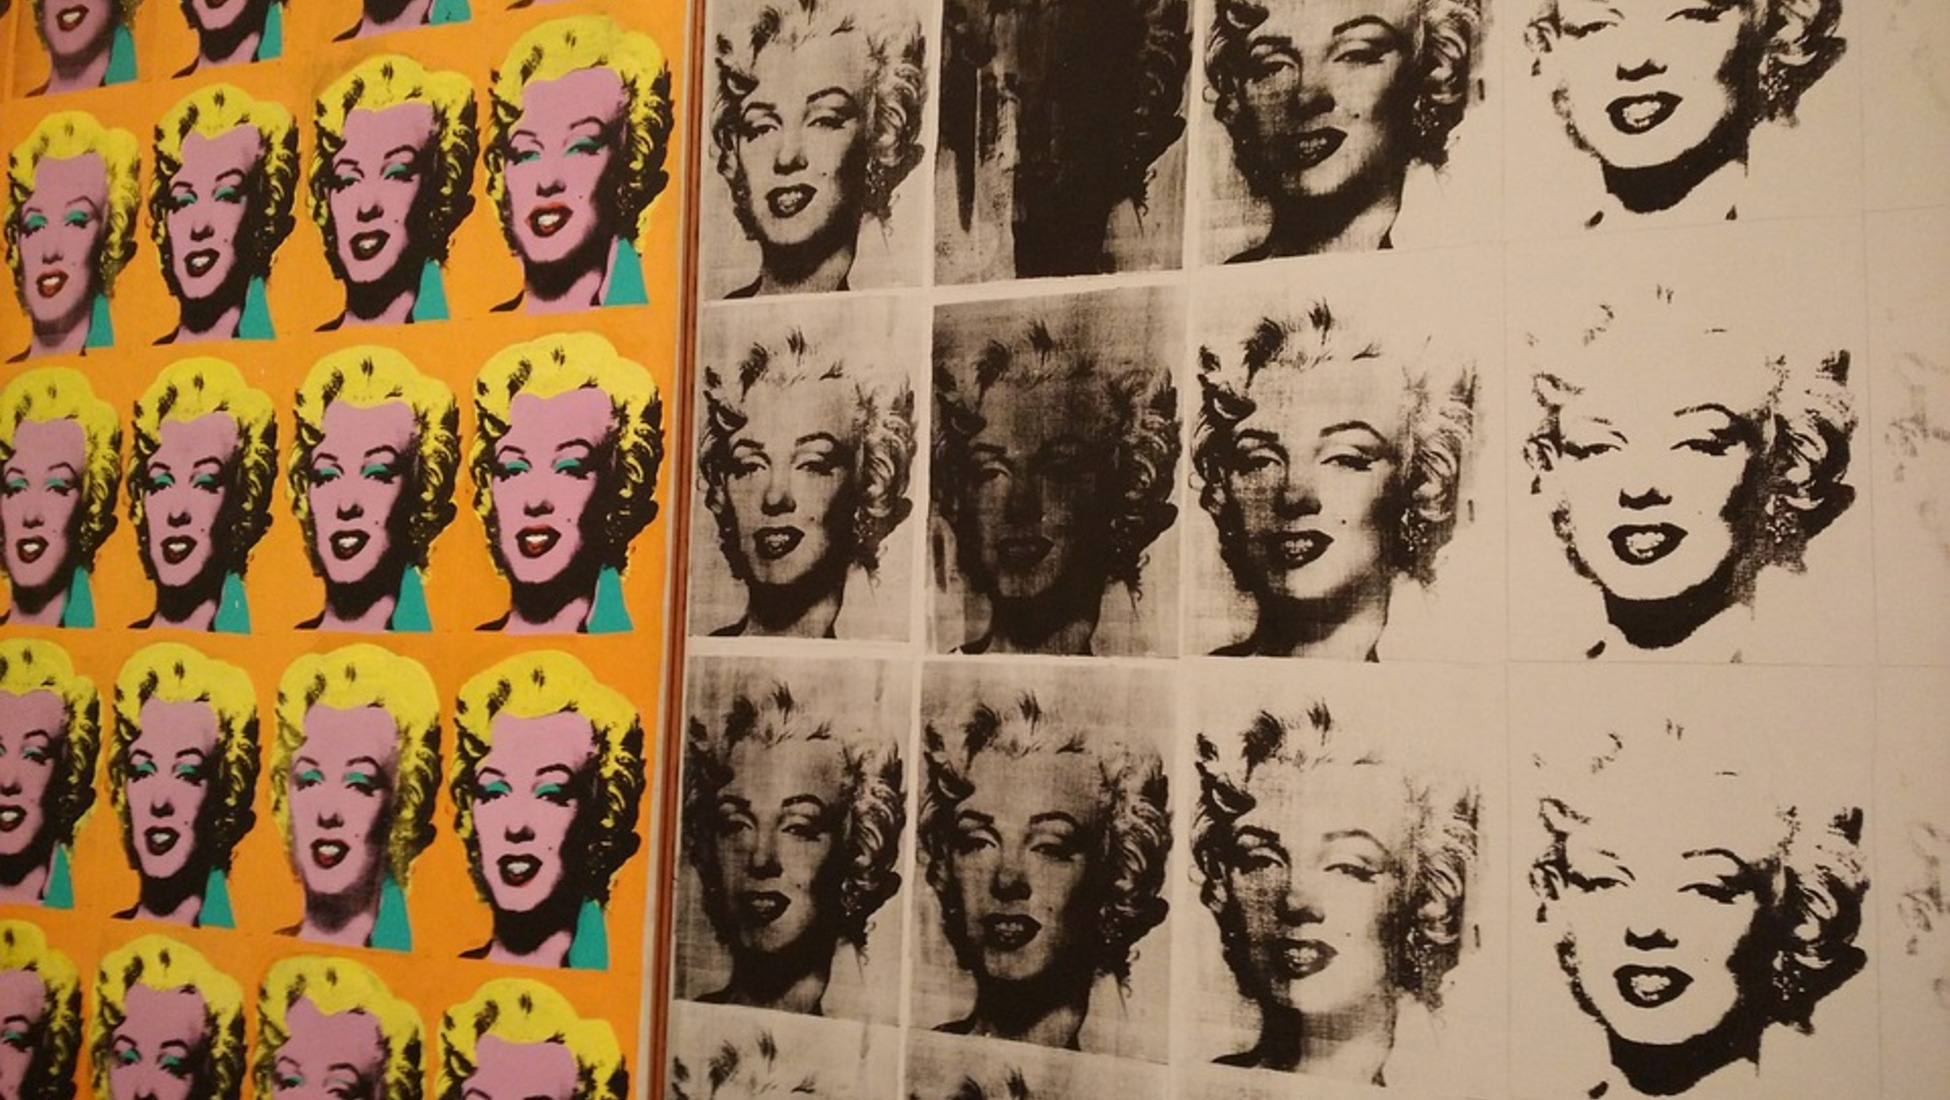 Marilyn Pop Art Andy Warhol The Truth Behind Andy Warhol Marilyn Monroe And The Pop